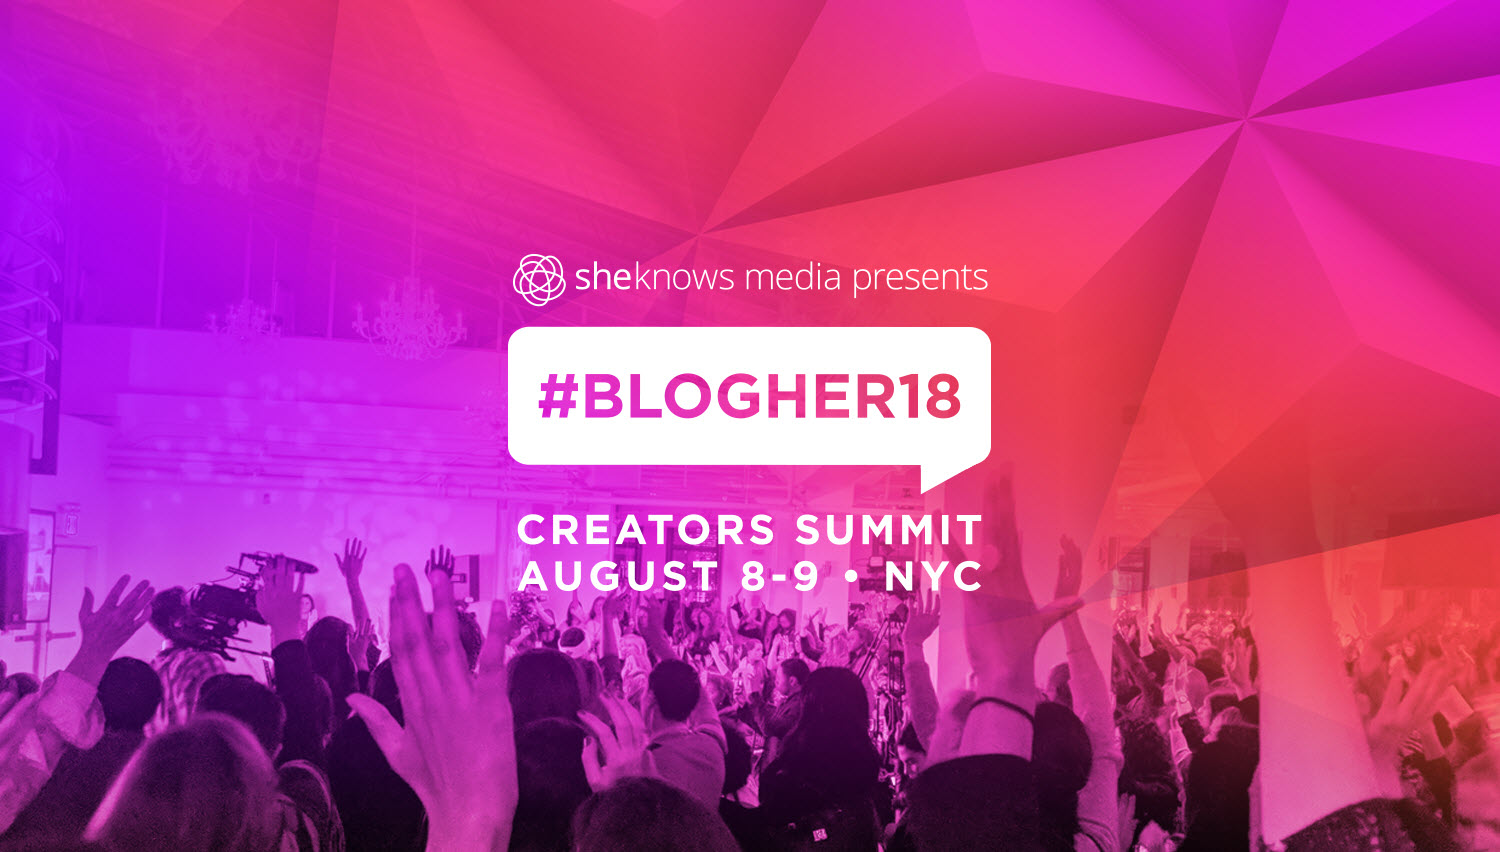 It's Official - We'll be at the Seaport in NYC on August 8th & 9th for #BlogHer18 Creators Summit!